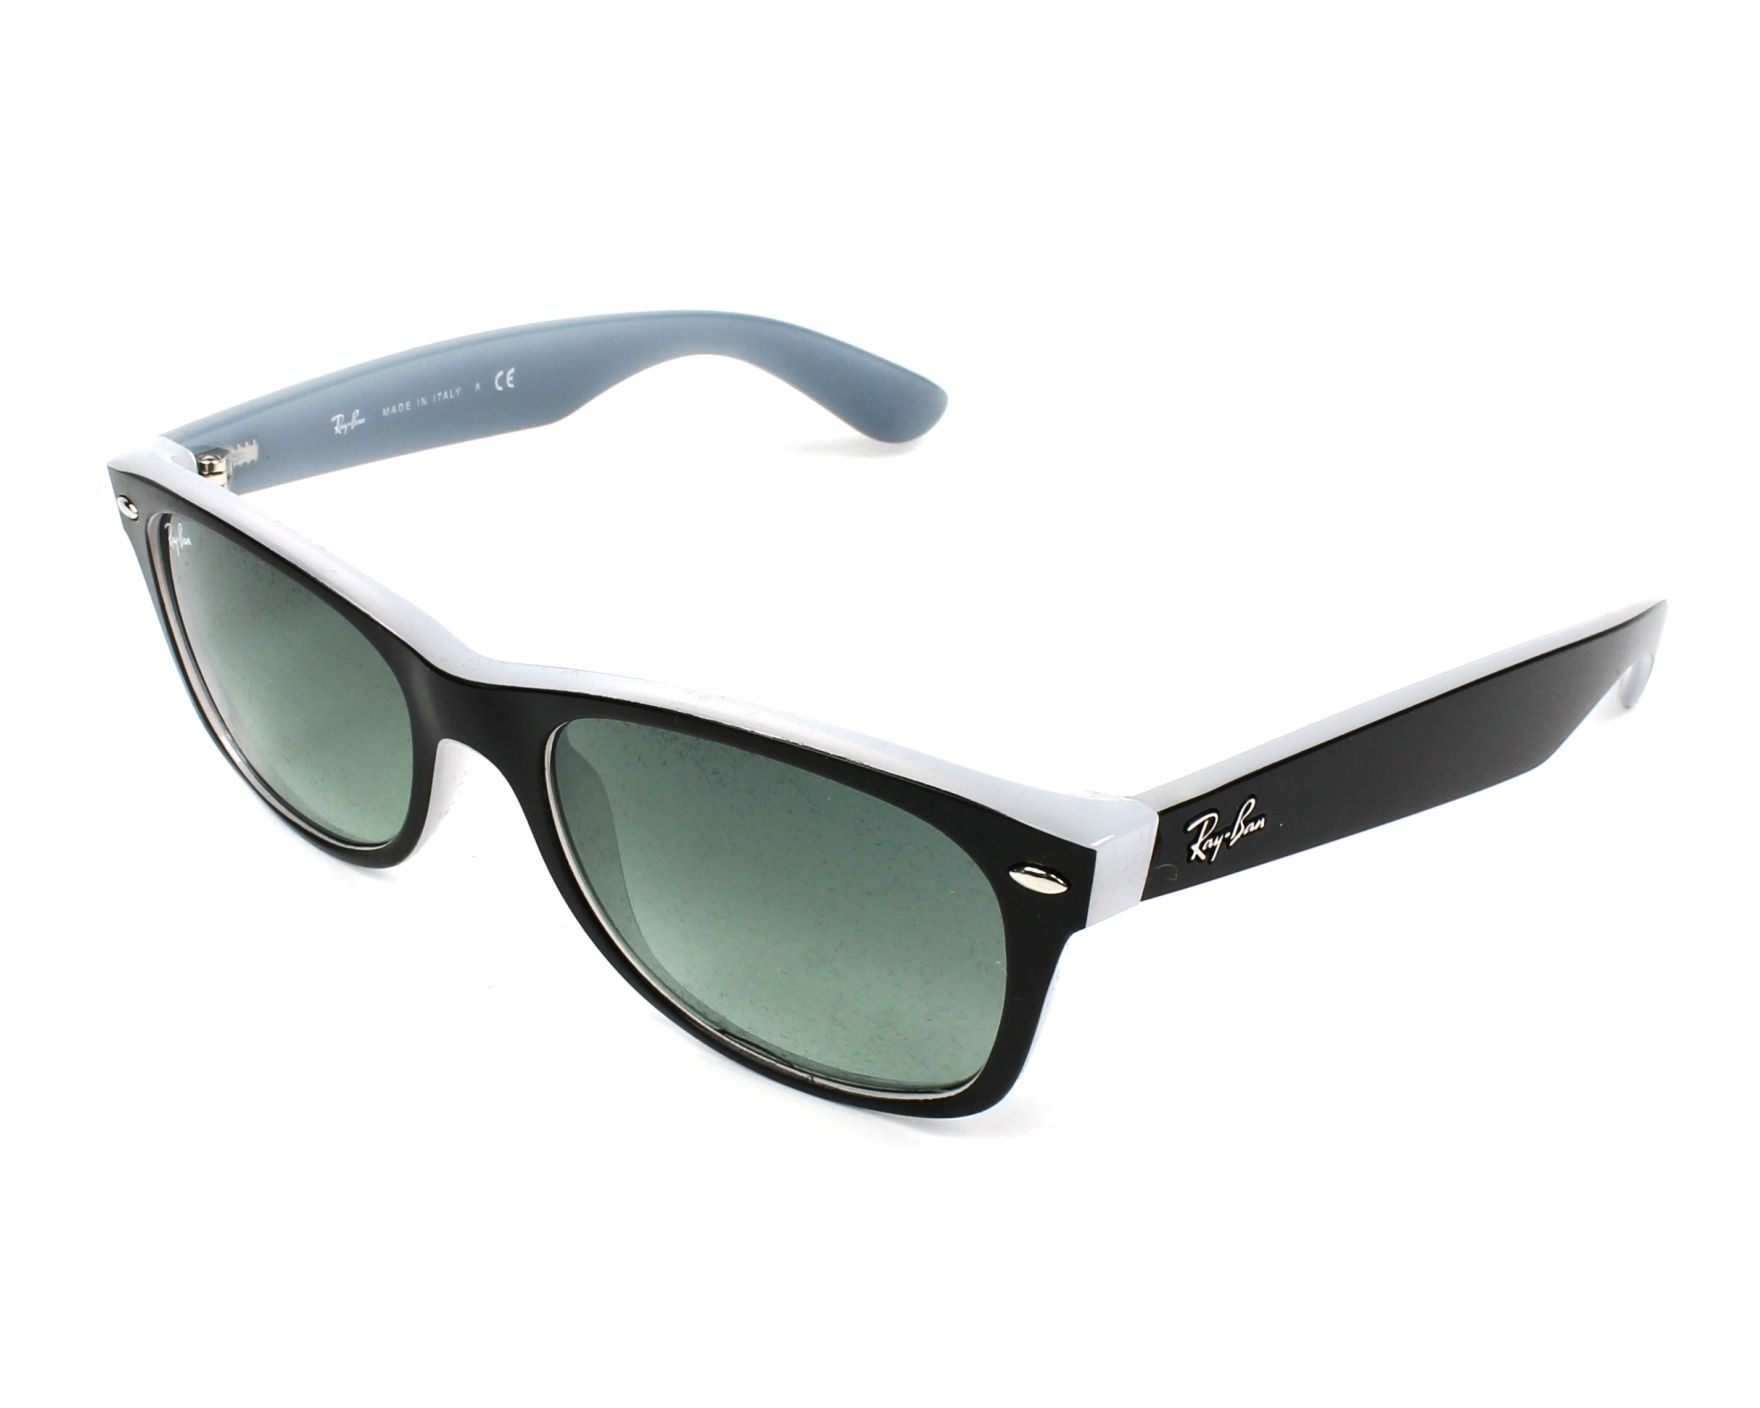 1113791c8662 Sunglasses Ray-Ban RB-2132 630971 55-18 Black Grey profile view